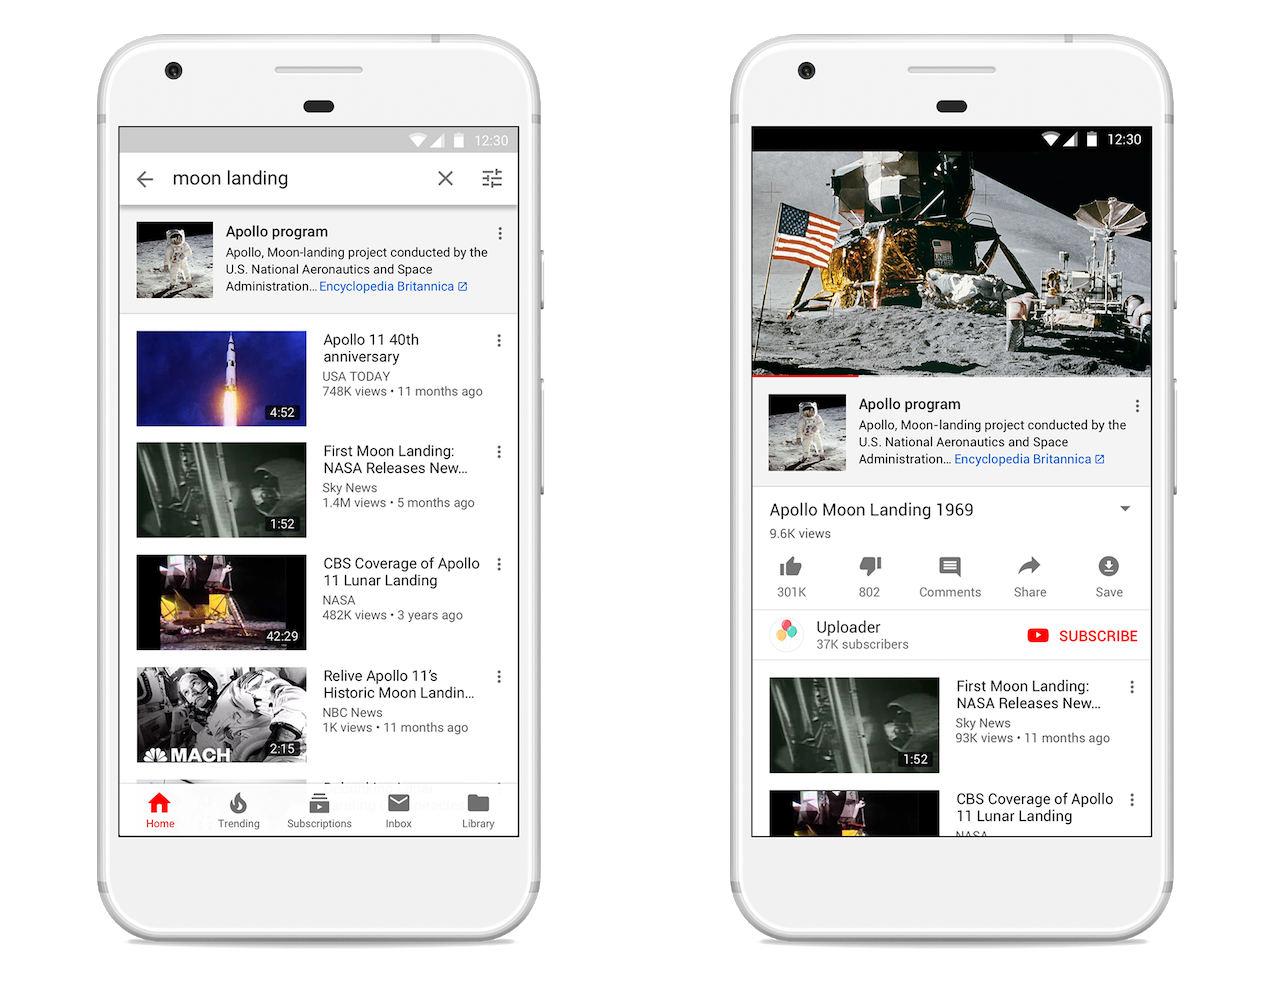 YouTube is fighting fighting fake news with $25M to promote journalism and more context in search results